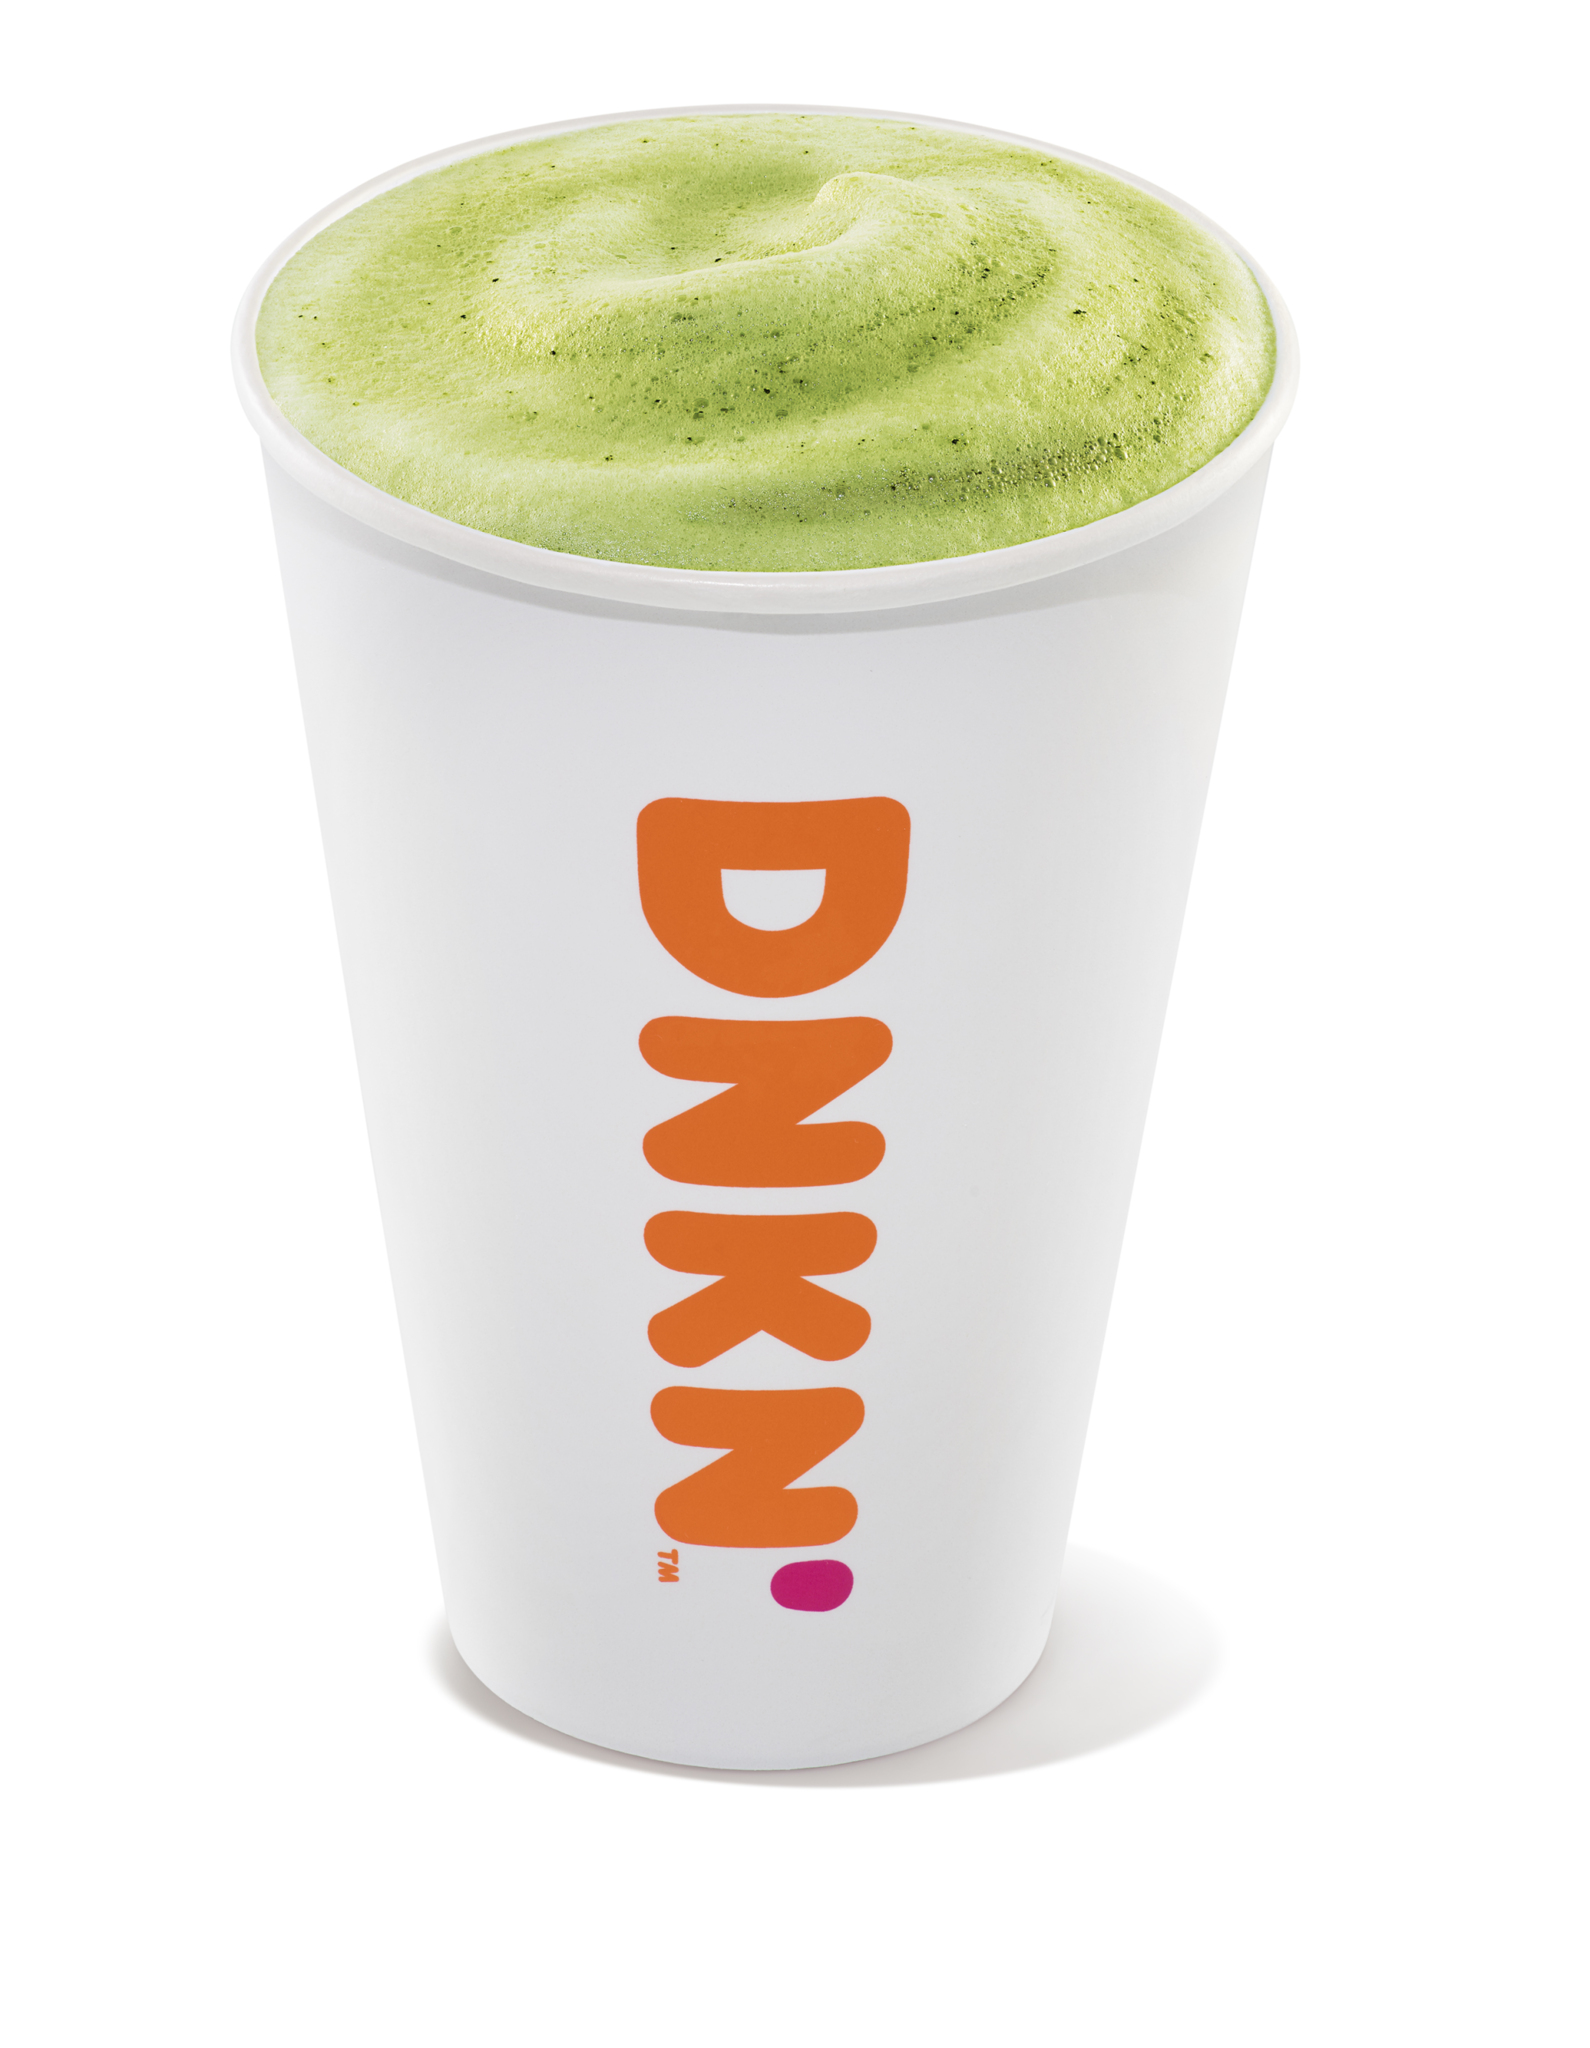 Dunkin' unveils new matcha lattes this month